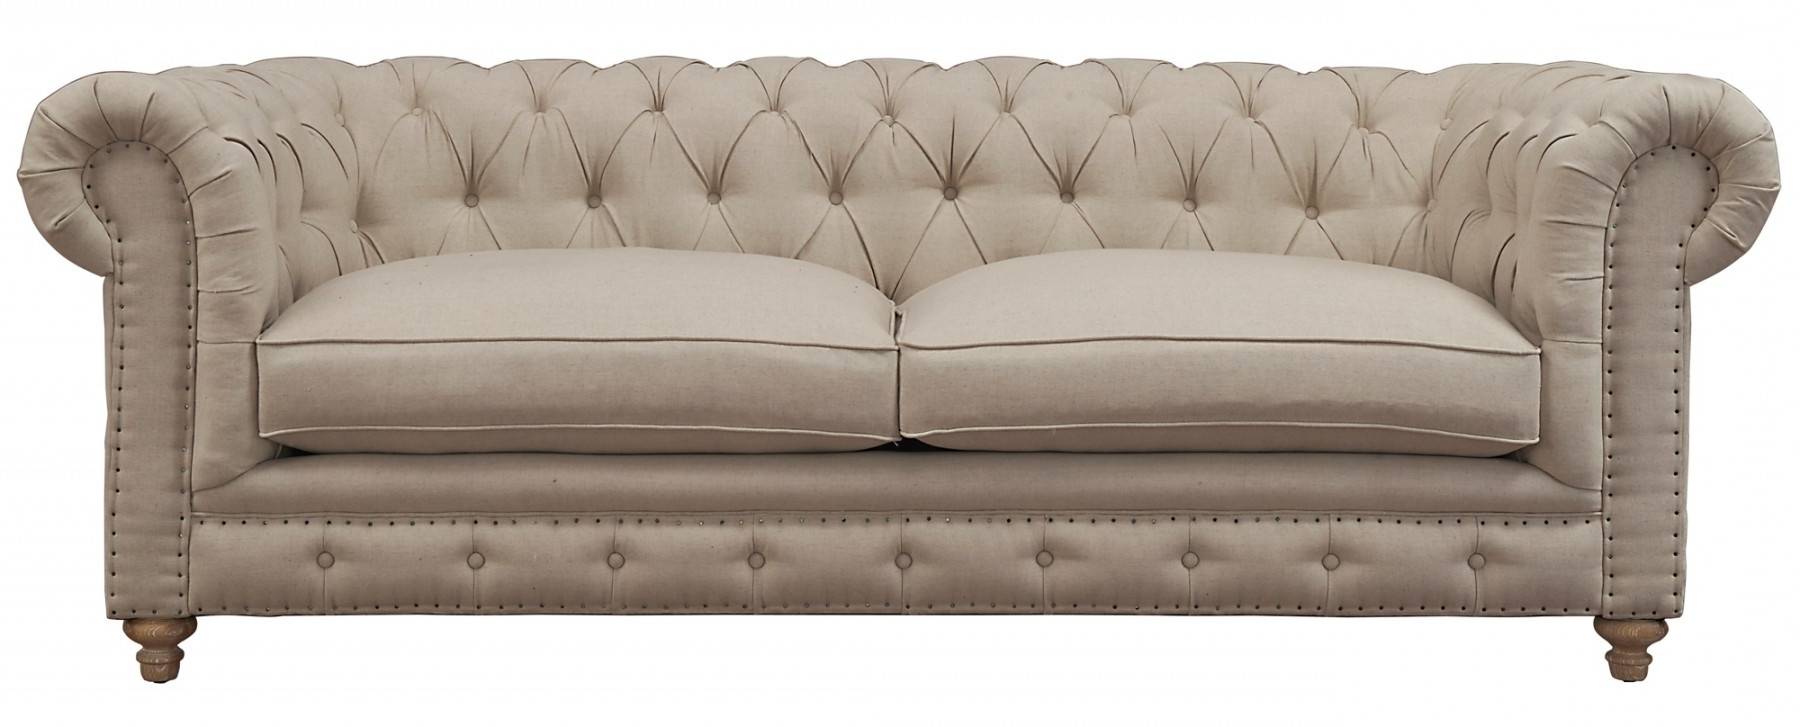 Oxford Sofas With 2018 Oxford Beige Linen Sofatov Furniture Buy Online At Best Price (View 4 of 20)